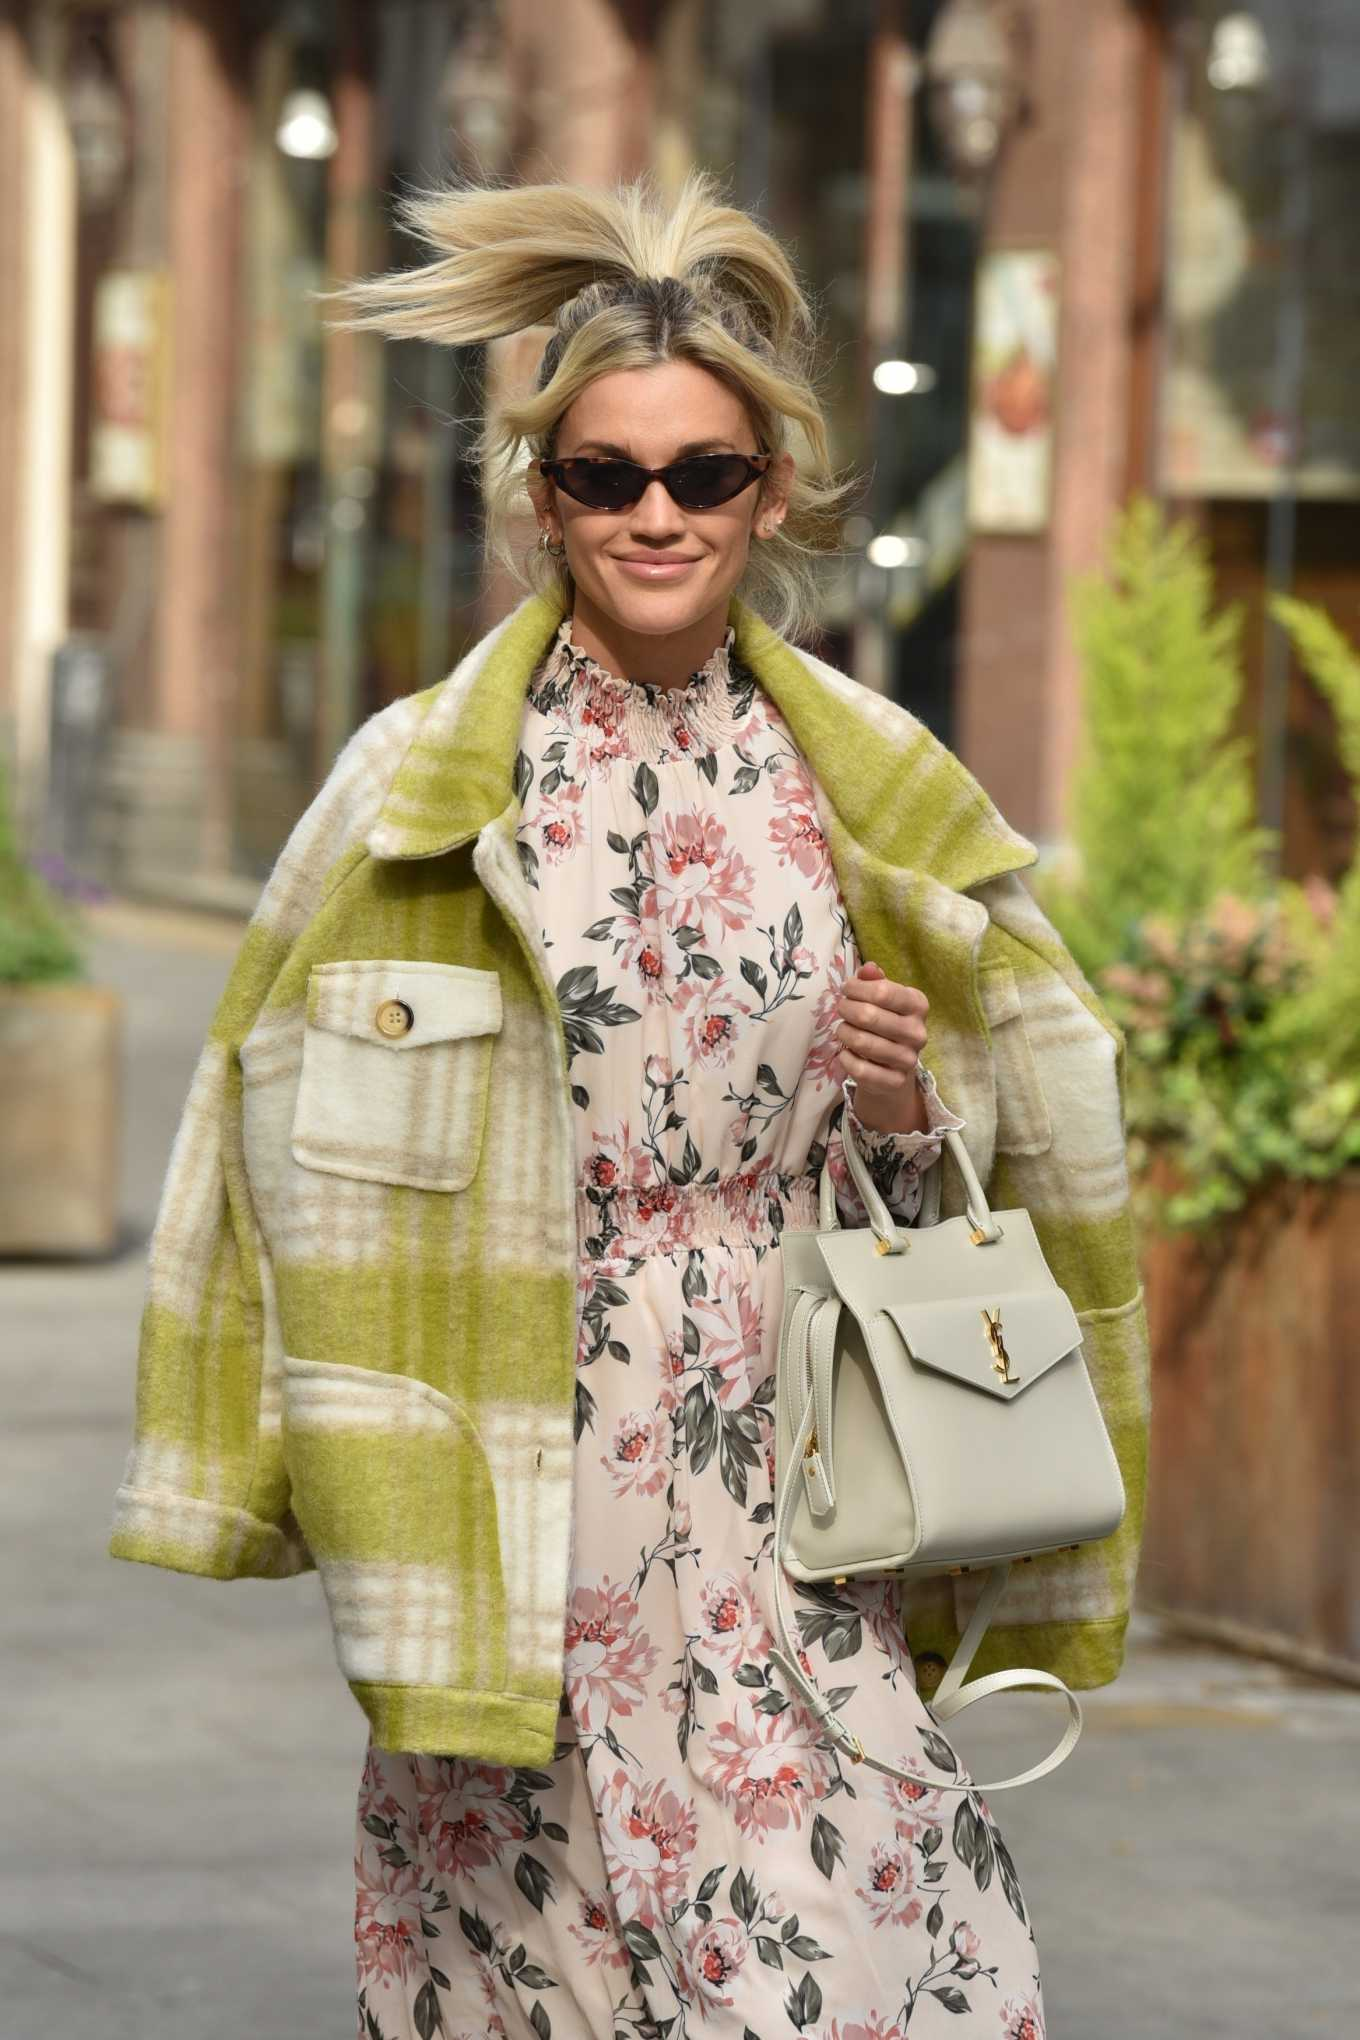 Ashley Roberts - Spotted leaving the Global studios in London